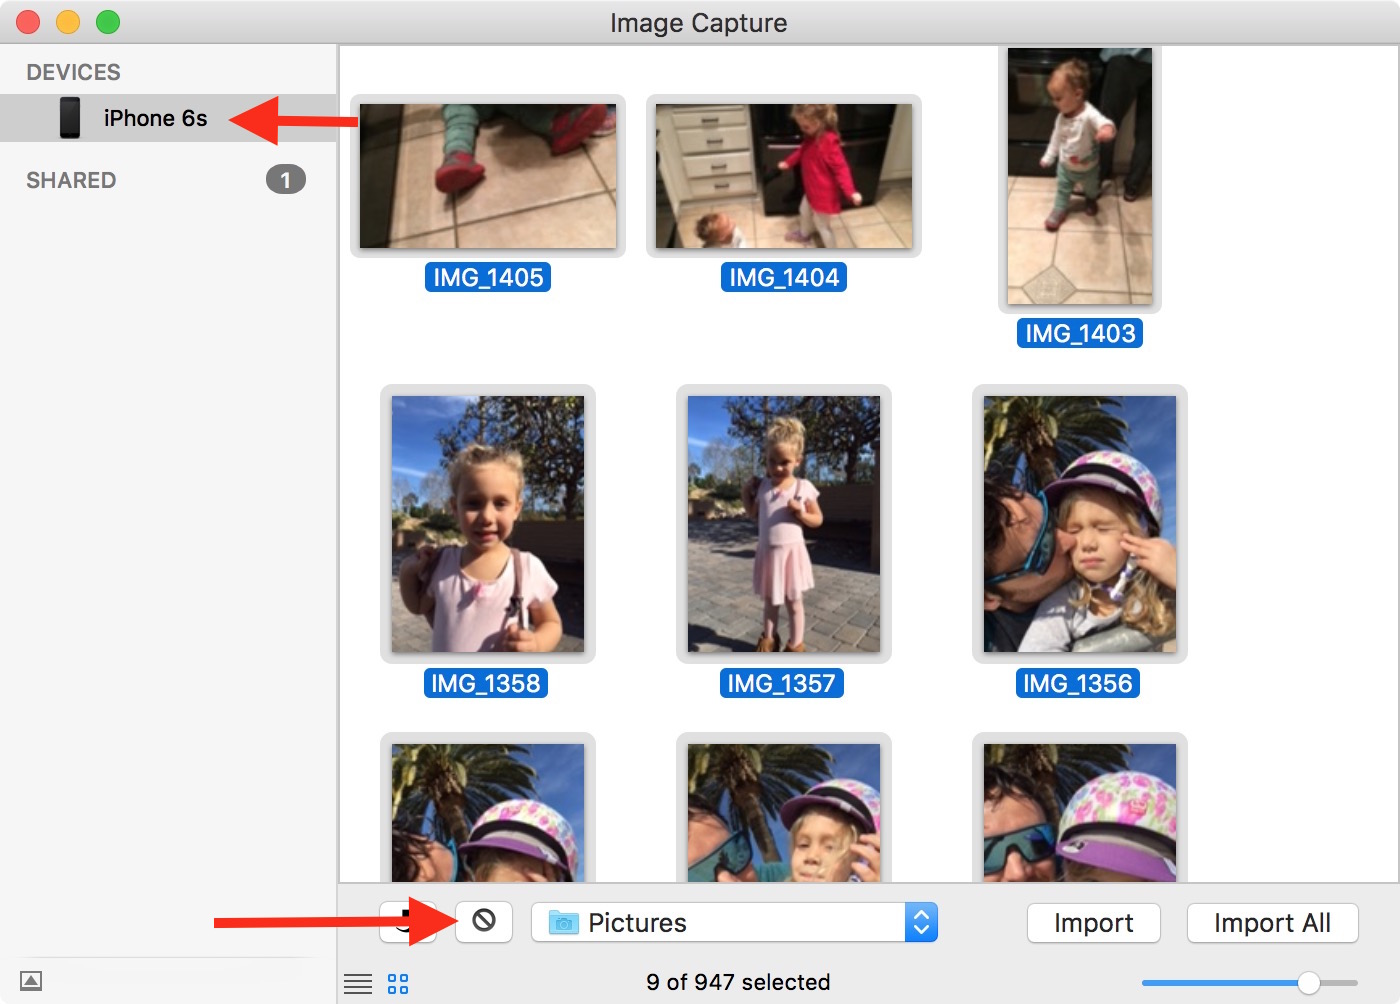 Delete all photos in Image Capture